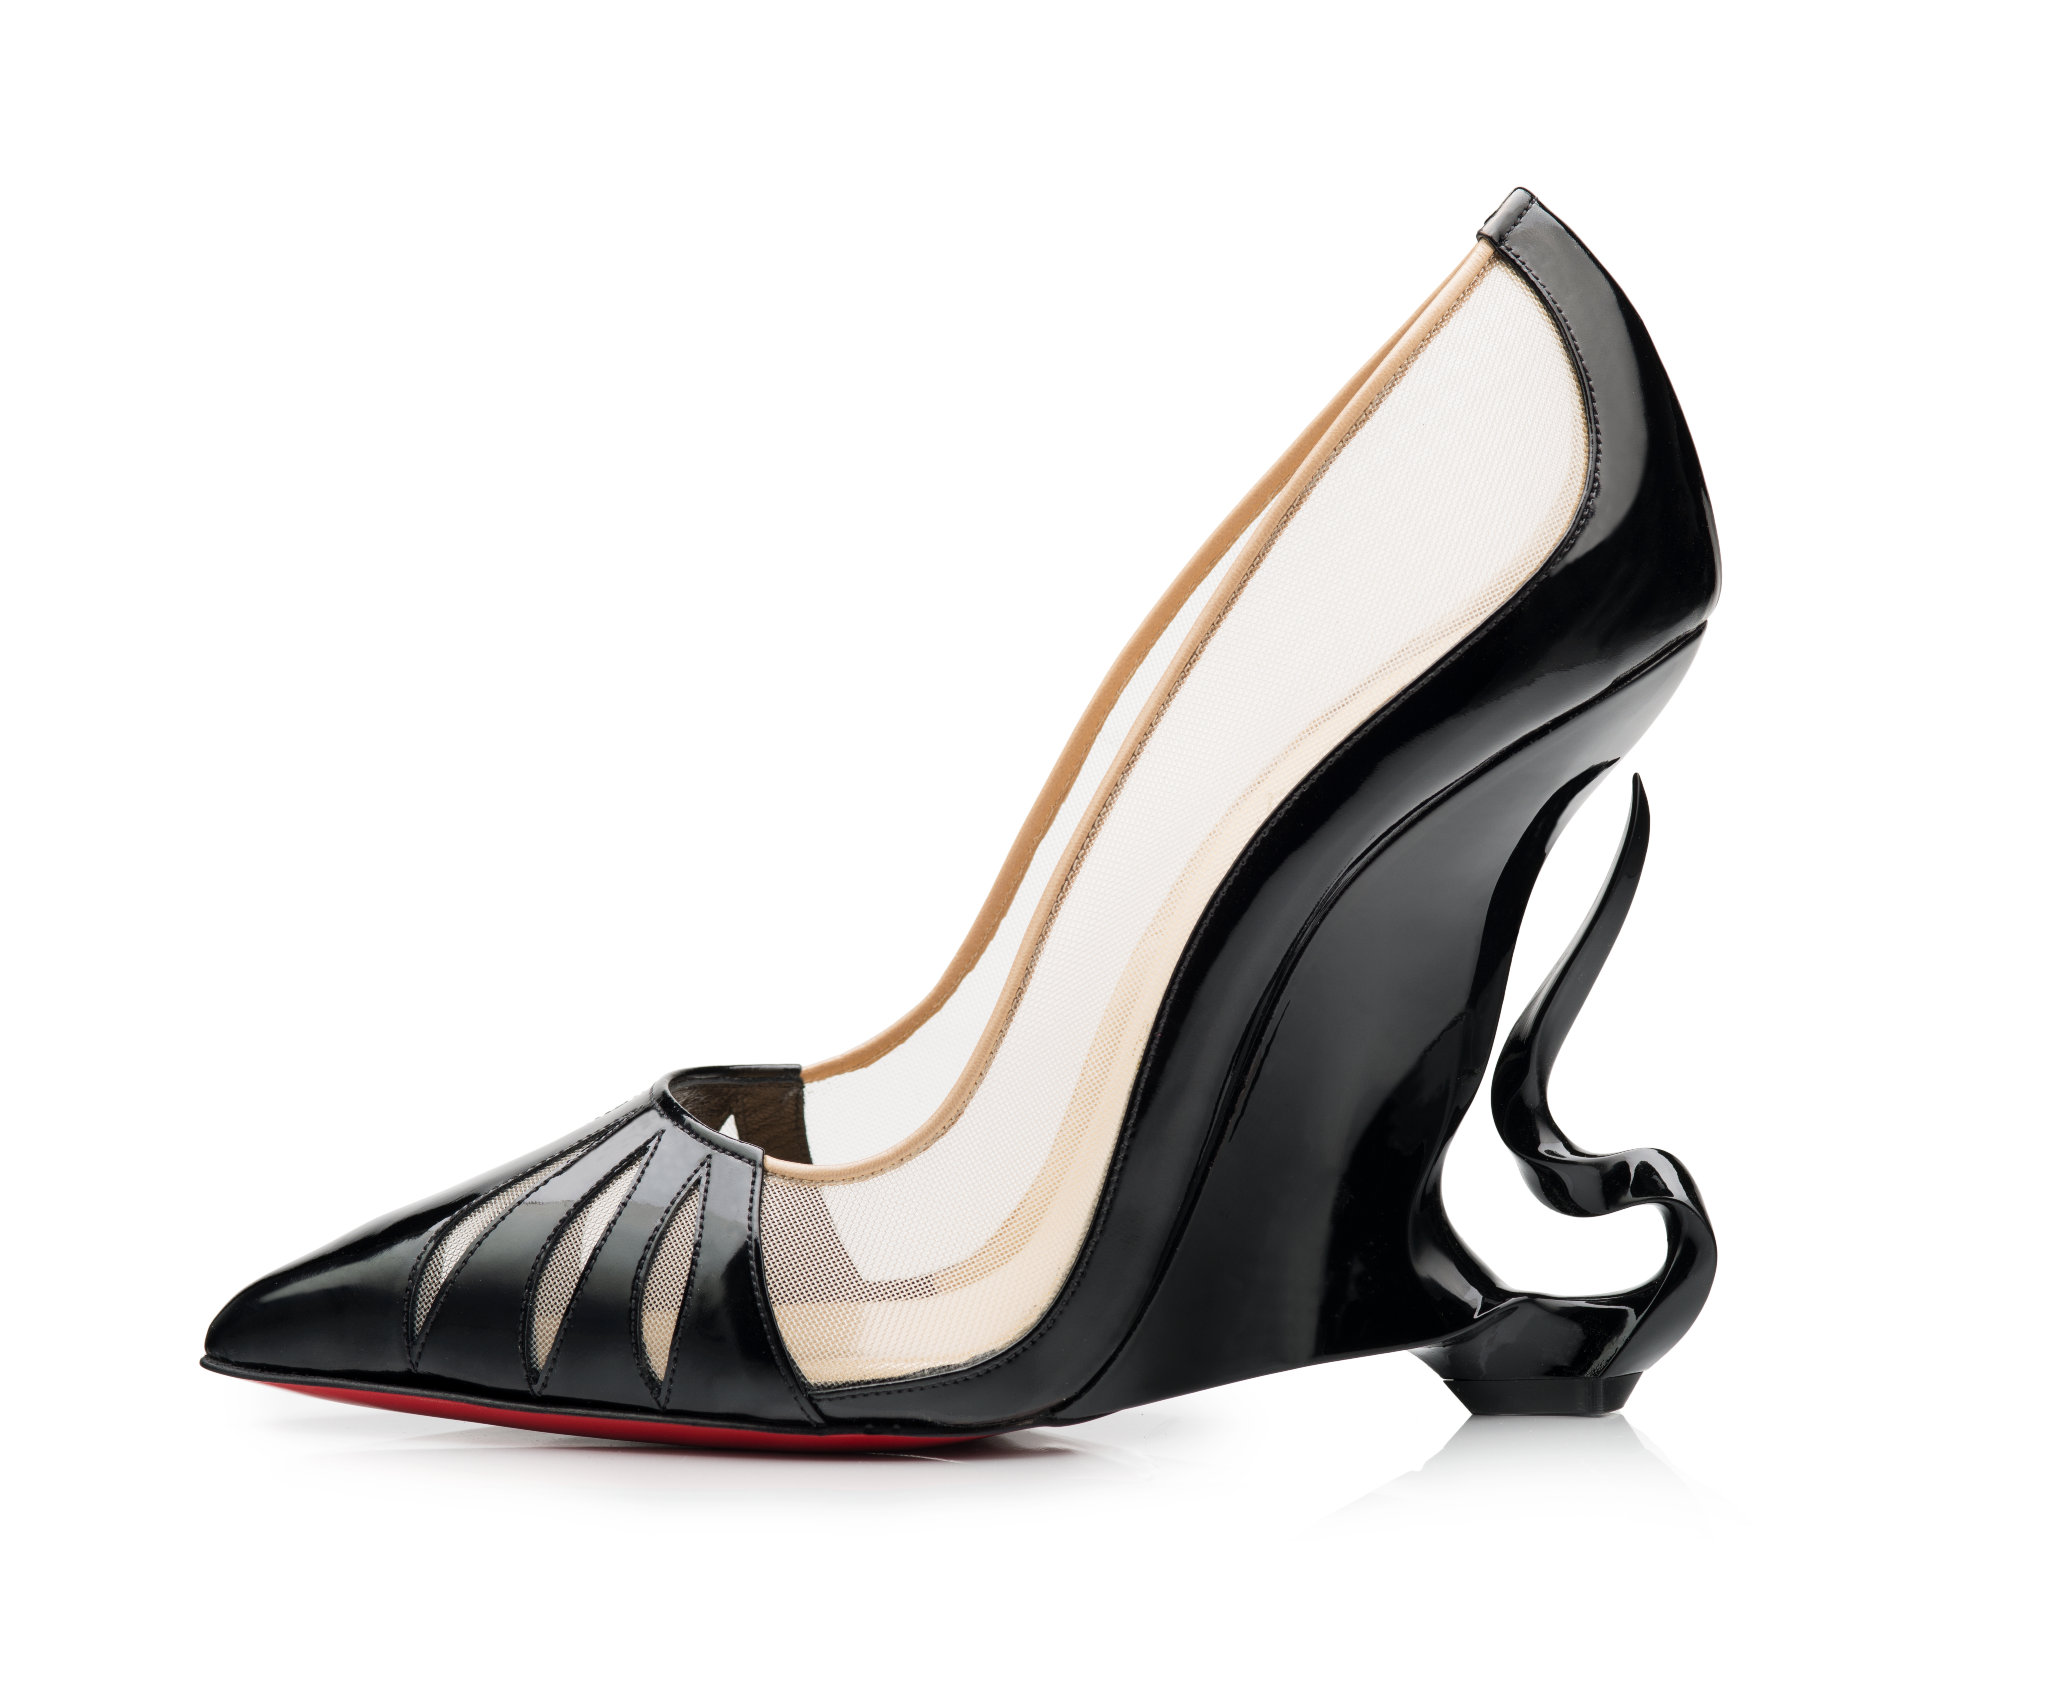 Christian Louboutin Malangeli shoes go on sale in October ...